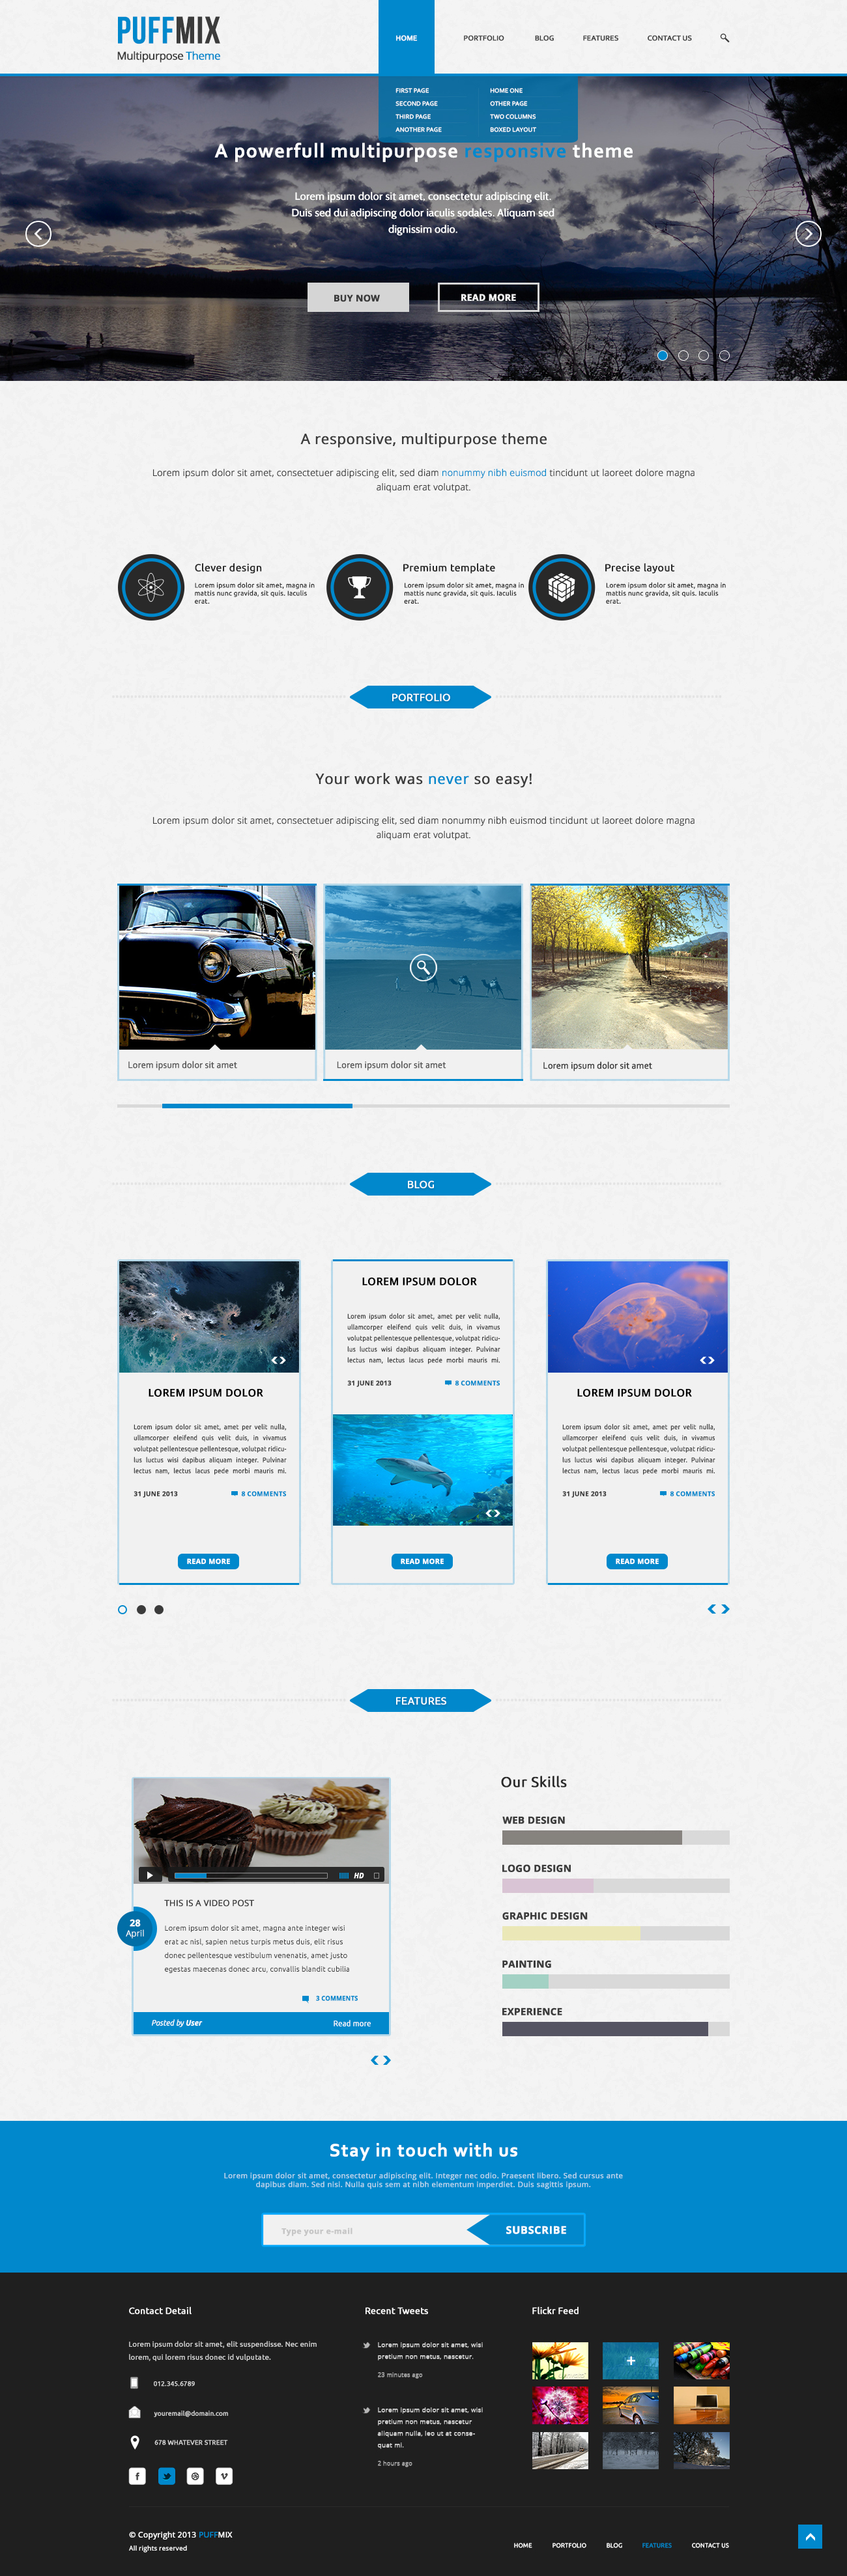 Cretive Web Design